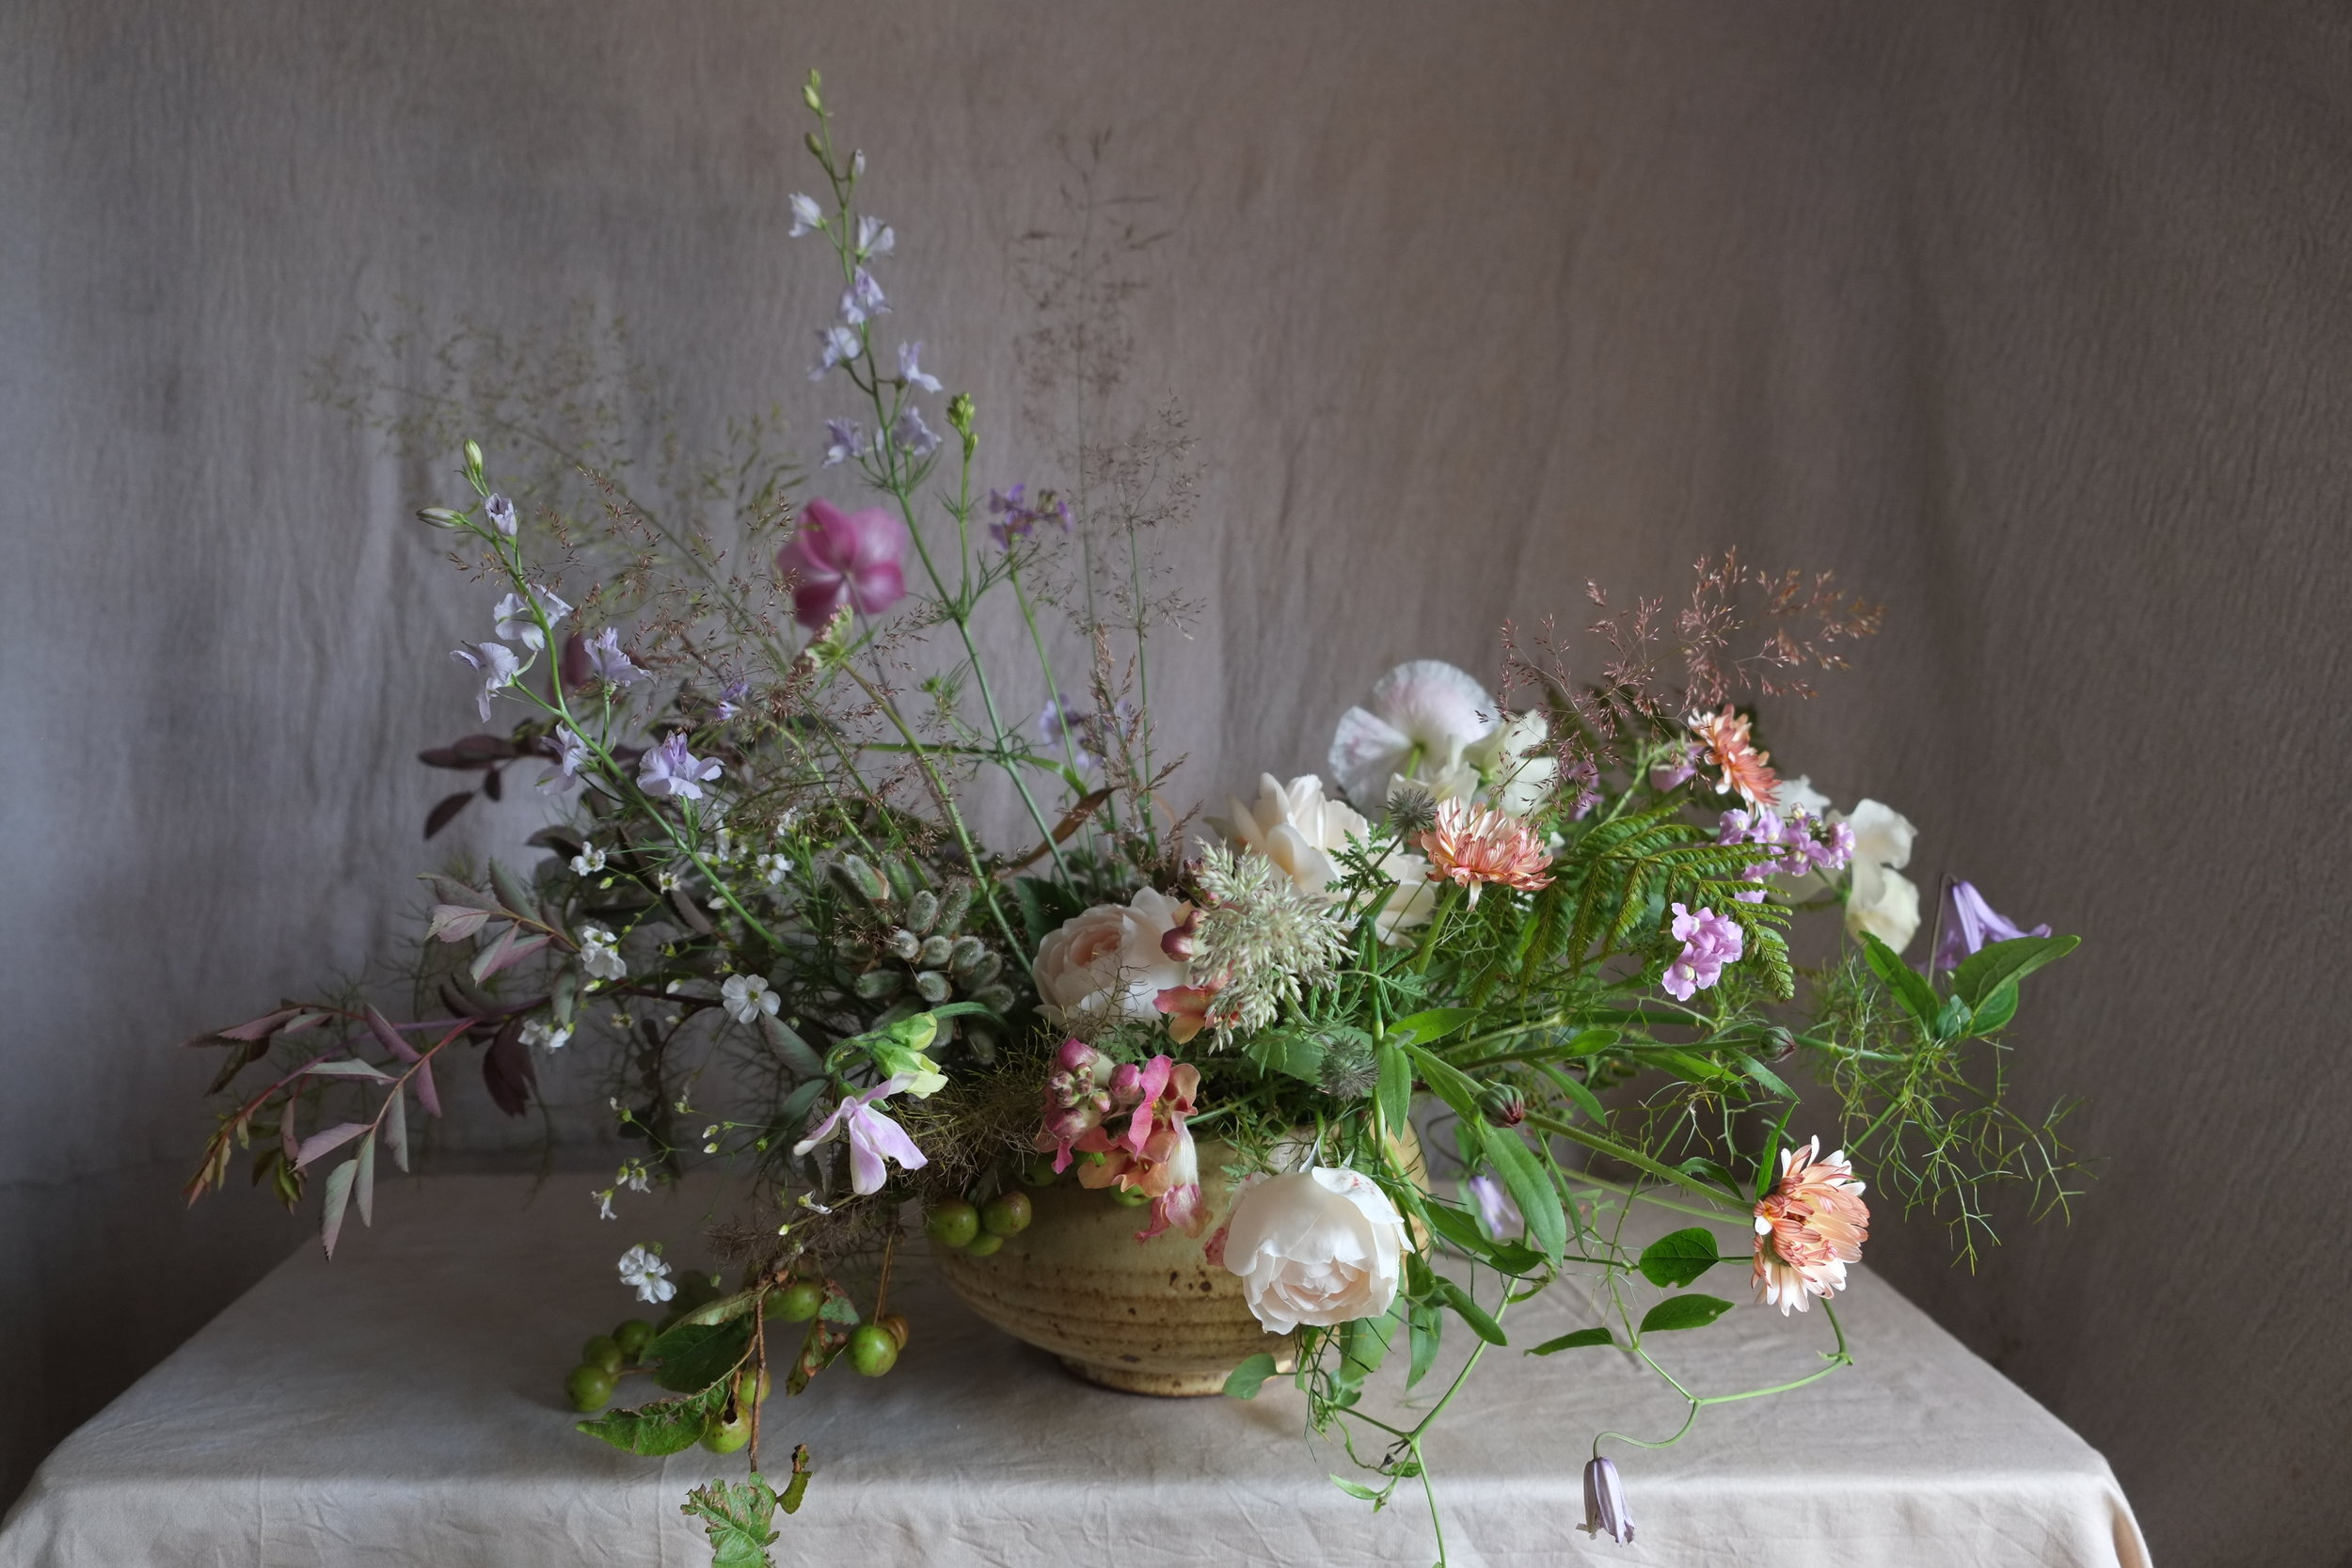 July inspiration for wedding flowers on tables.